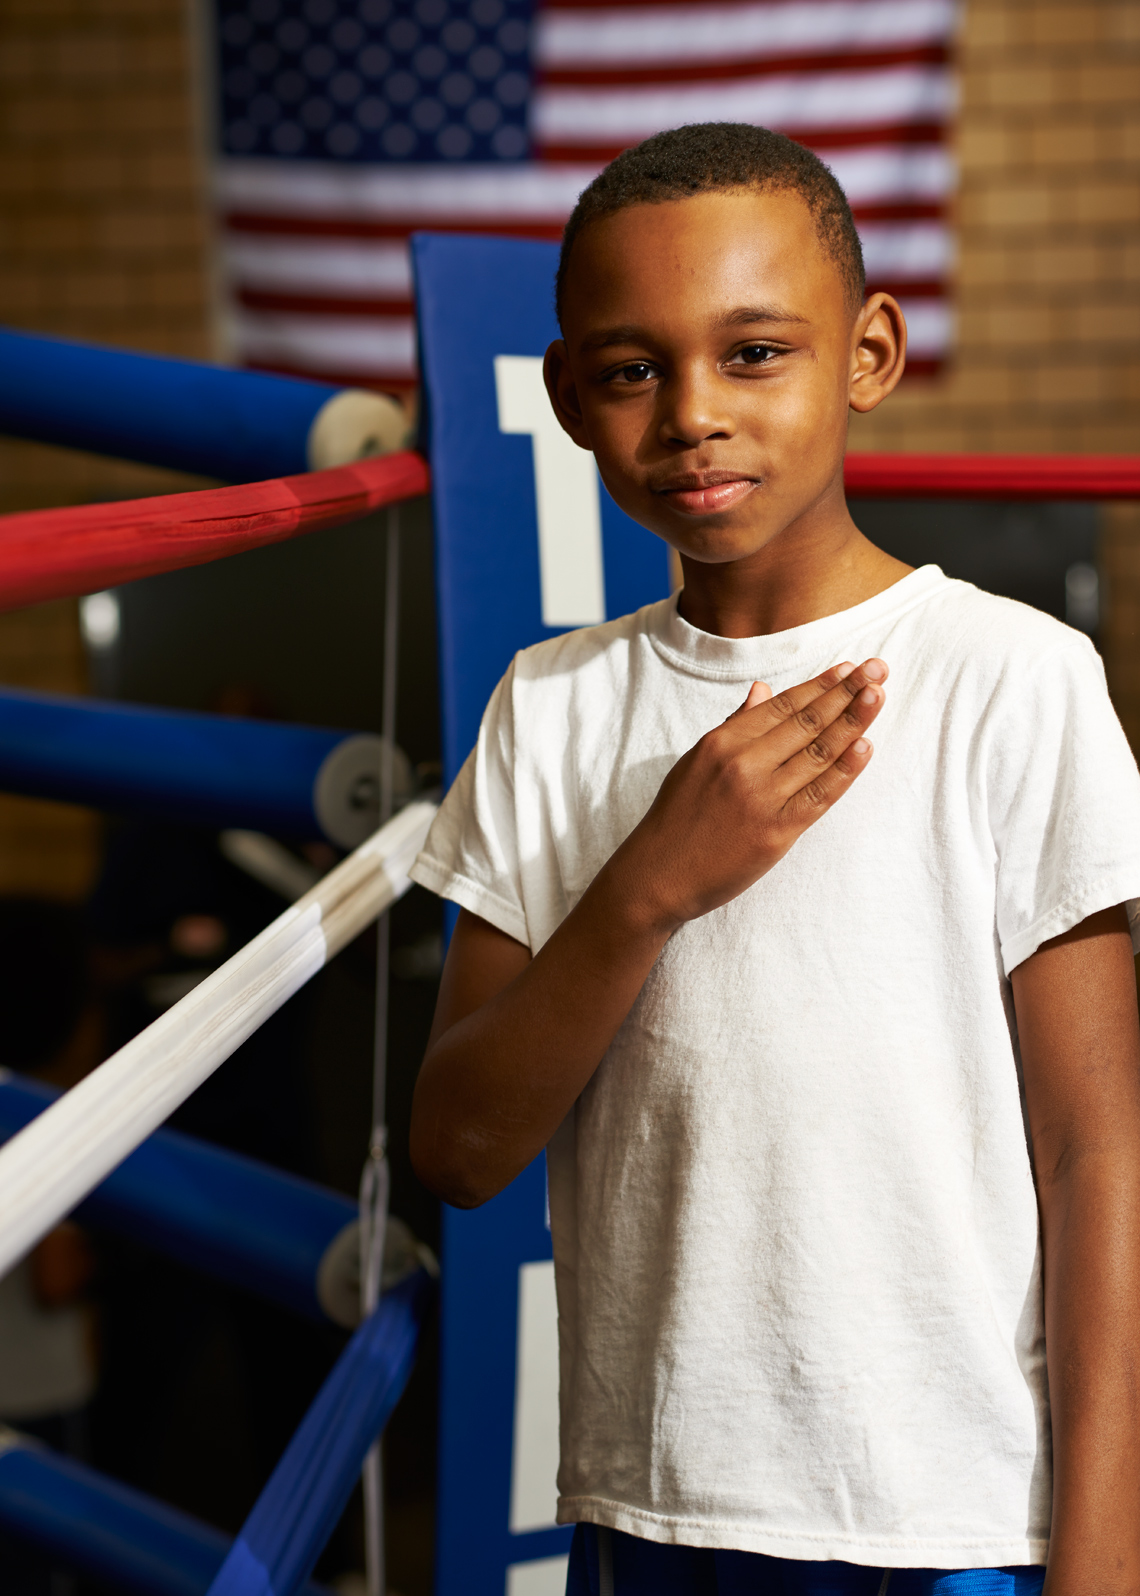 African American Boy with hand over heart and Flag Background